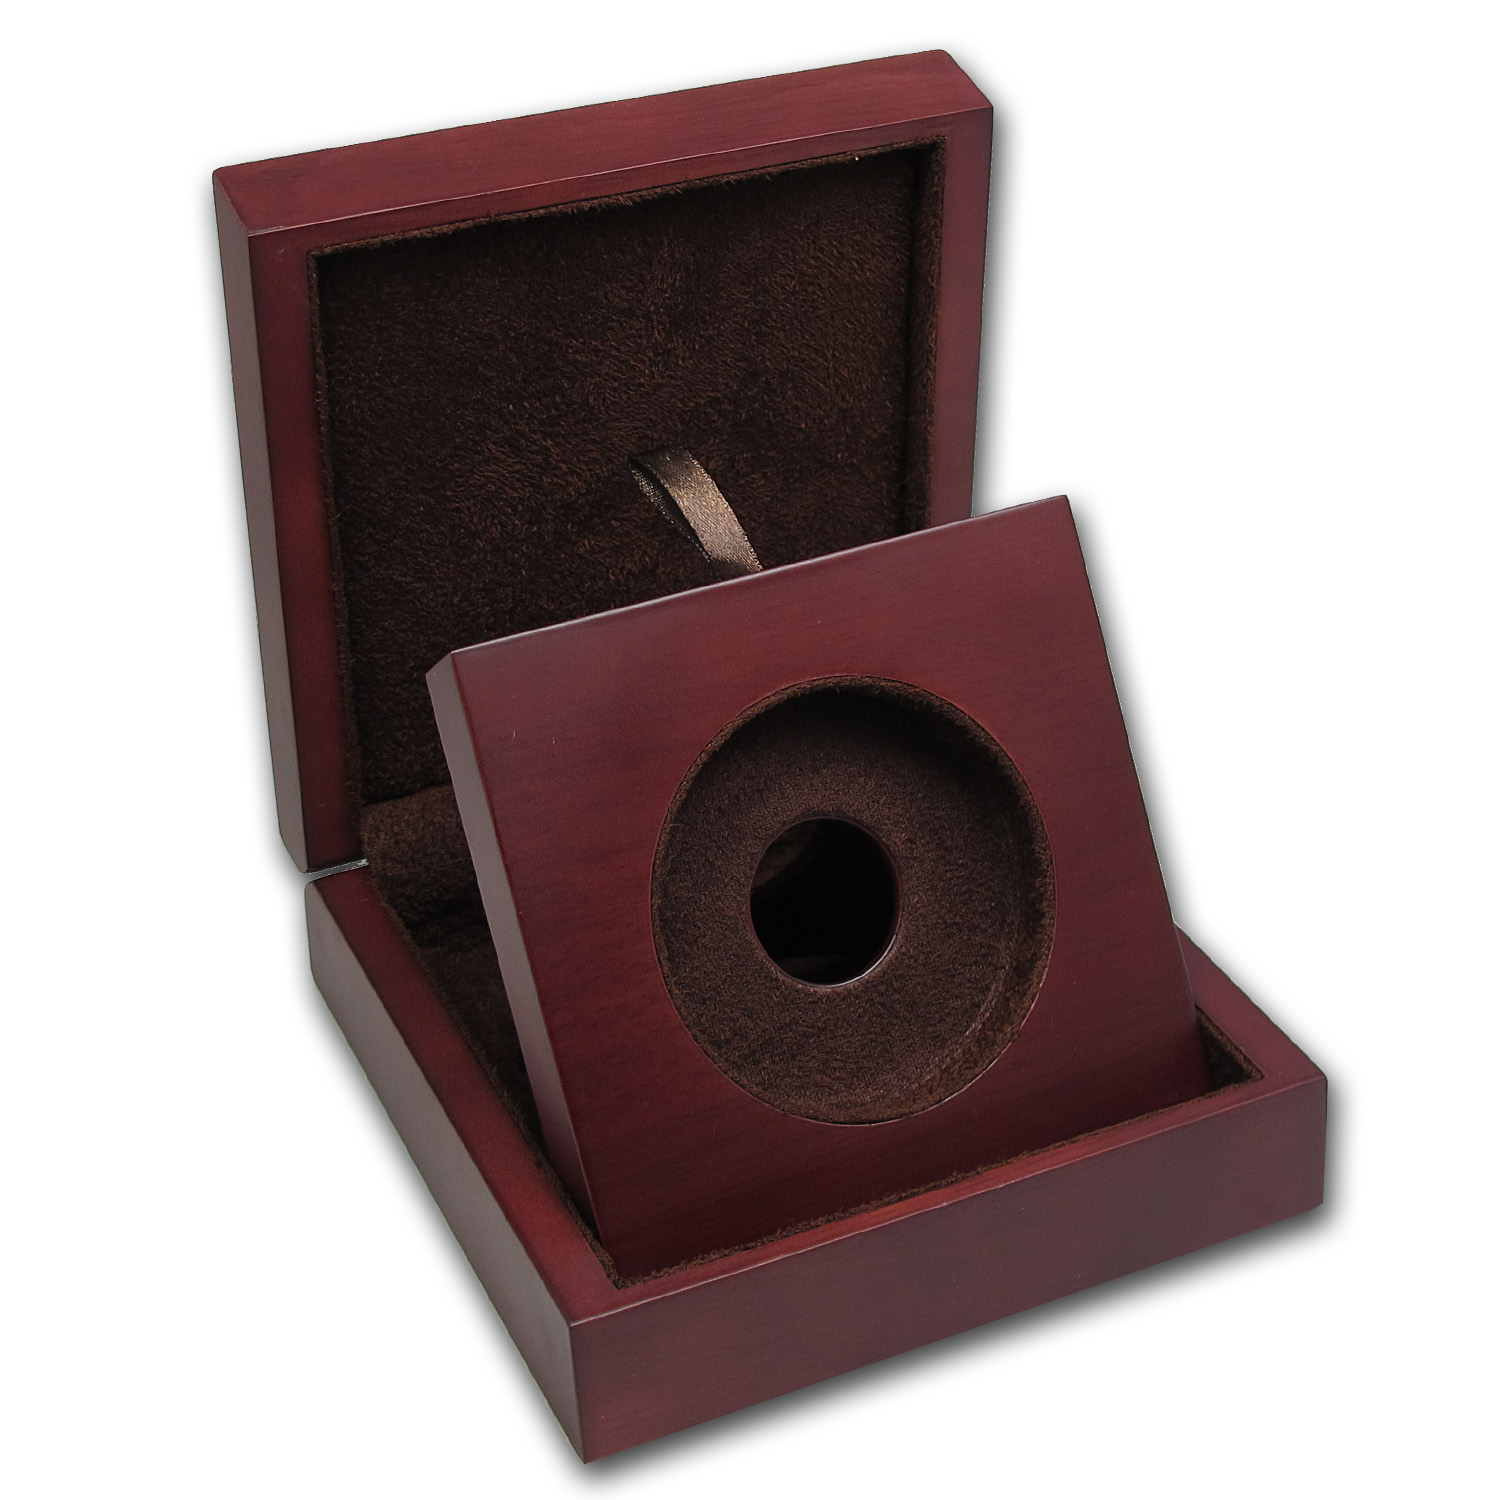 APMEX Wood Presentation Box - Perth 10 oz Gold Round Series 1